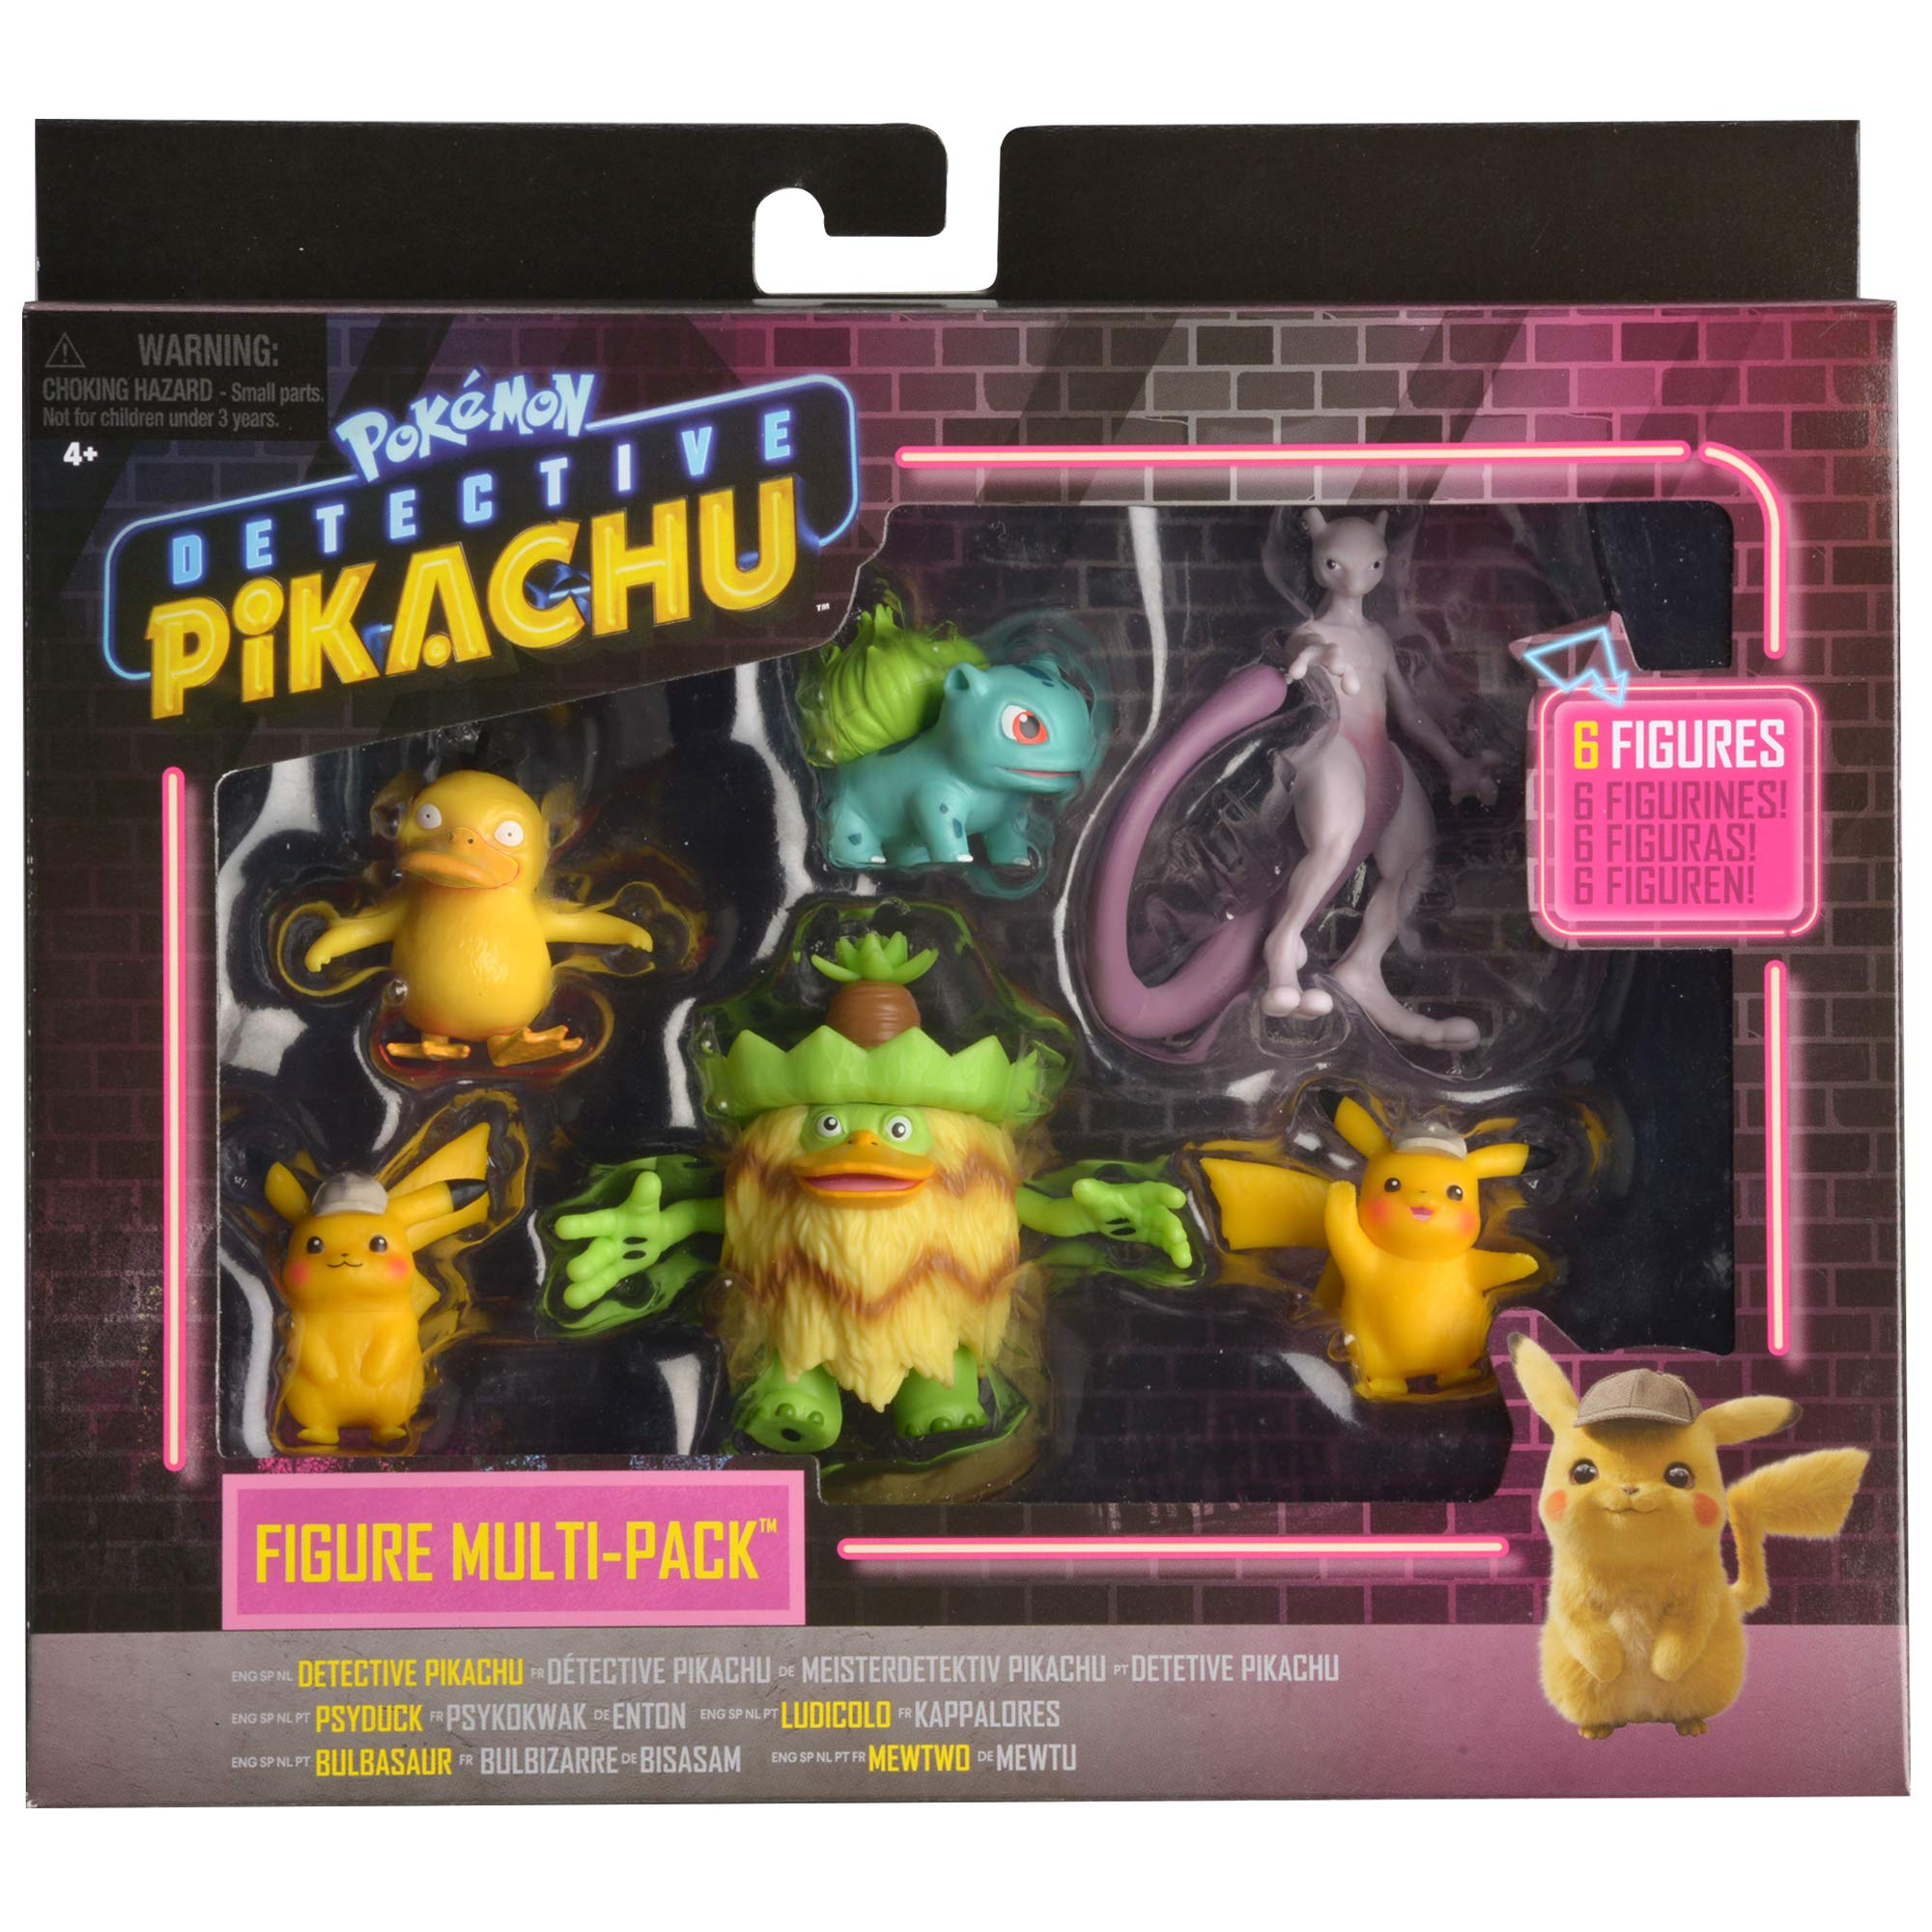 Detective Pikachu Battle Action Figure 6-Pack - Includes two 2'' Detective Pikachu Figures, 2'' Psyduck, 2'' Bulbasaur, 3'' Mewtwo, and 3'' Ludicolo by Pokemon (Image #2)